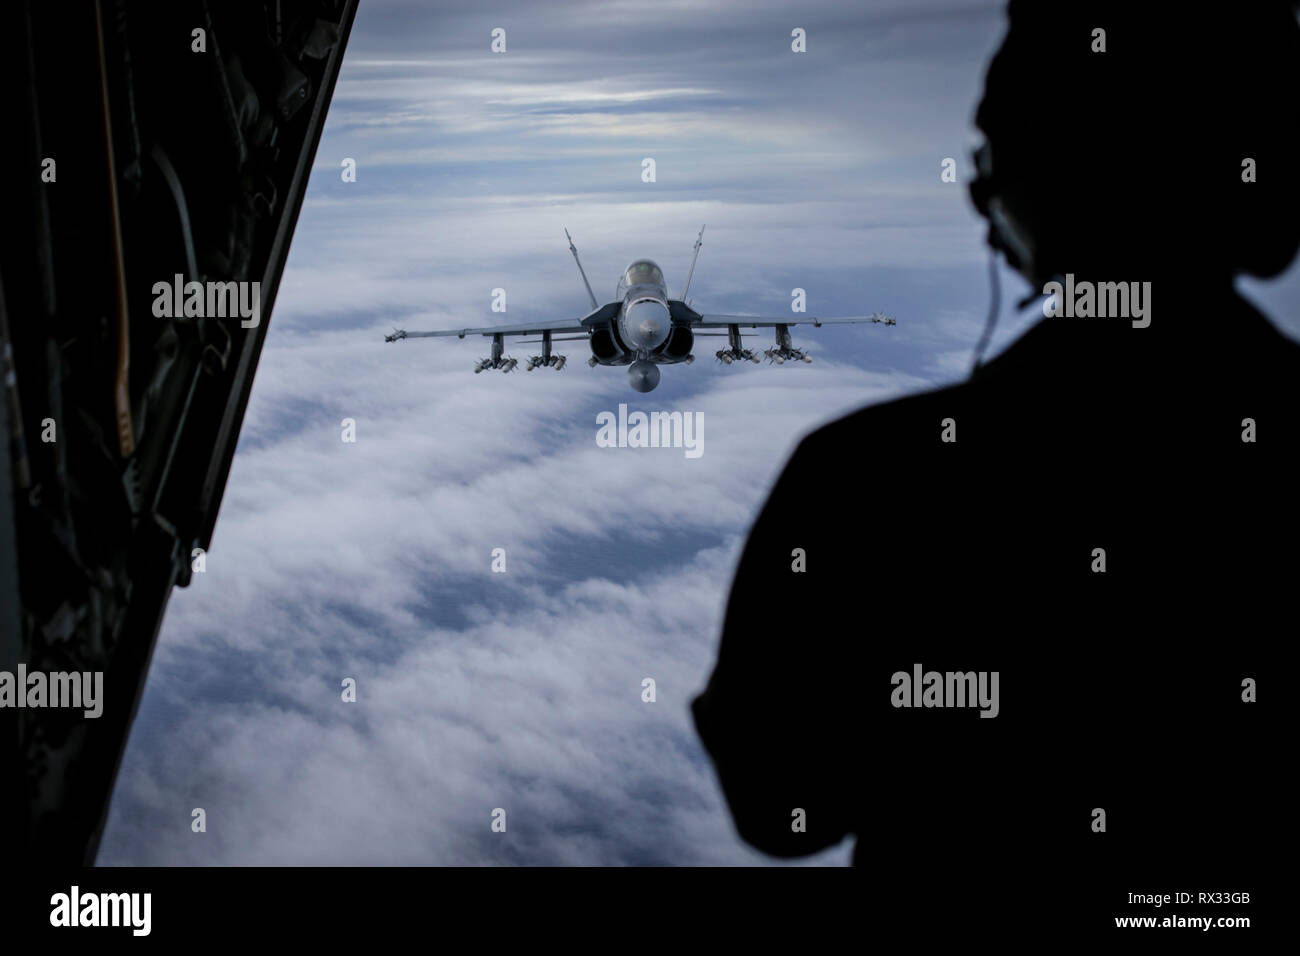 An F/A-18 Hornet with Marine Fighter Attack Squadron (VMFA) 323, MAG-11, 3rd Marine Aircraft Wing (MAW), carrying ten AIM-120 and two AIM-9X Air-to-Air missiles, prepares to refuel prior to a training mission over the W-291 training area in southern California, March 6.  MAG-11 supports and integrates aviation combat power and capabilities while enhancing 3rd MAW's ability generate lethality for the supported Marine Air-Ground Task Force (MAGTF). (U.S Marine Corps photo by Sgt. David Bickel) Stock Photo